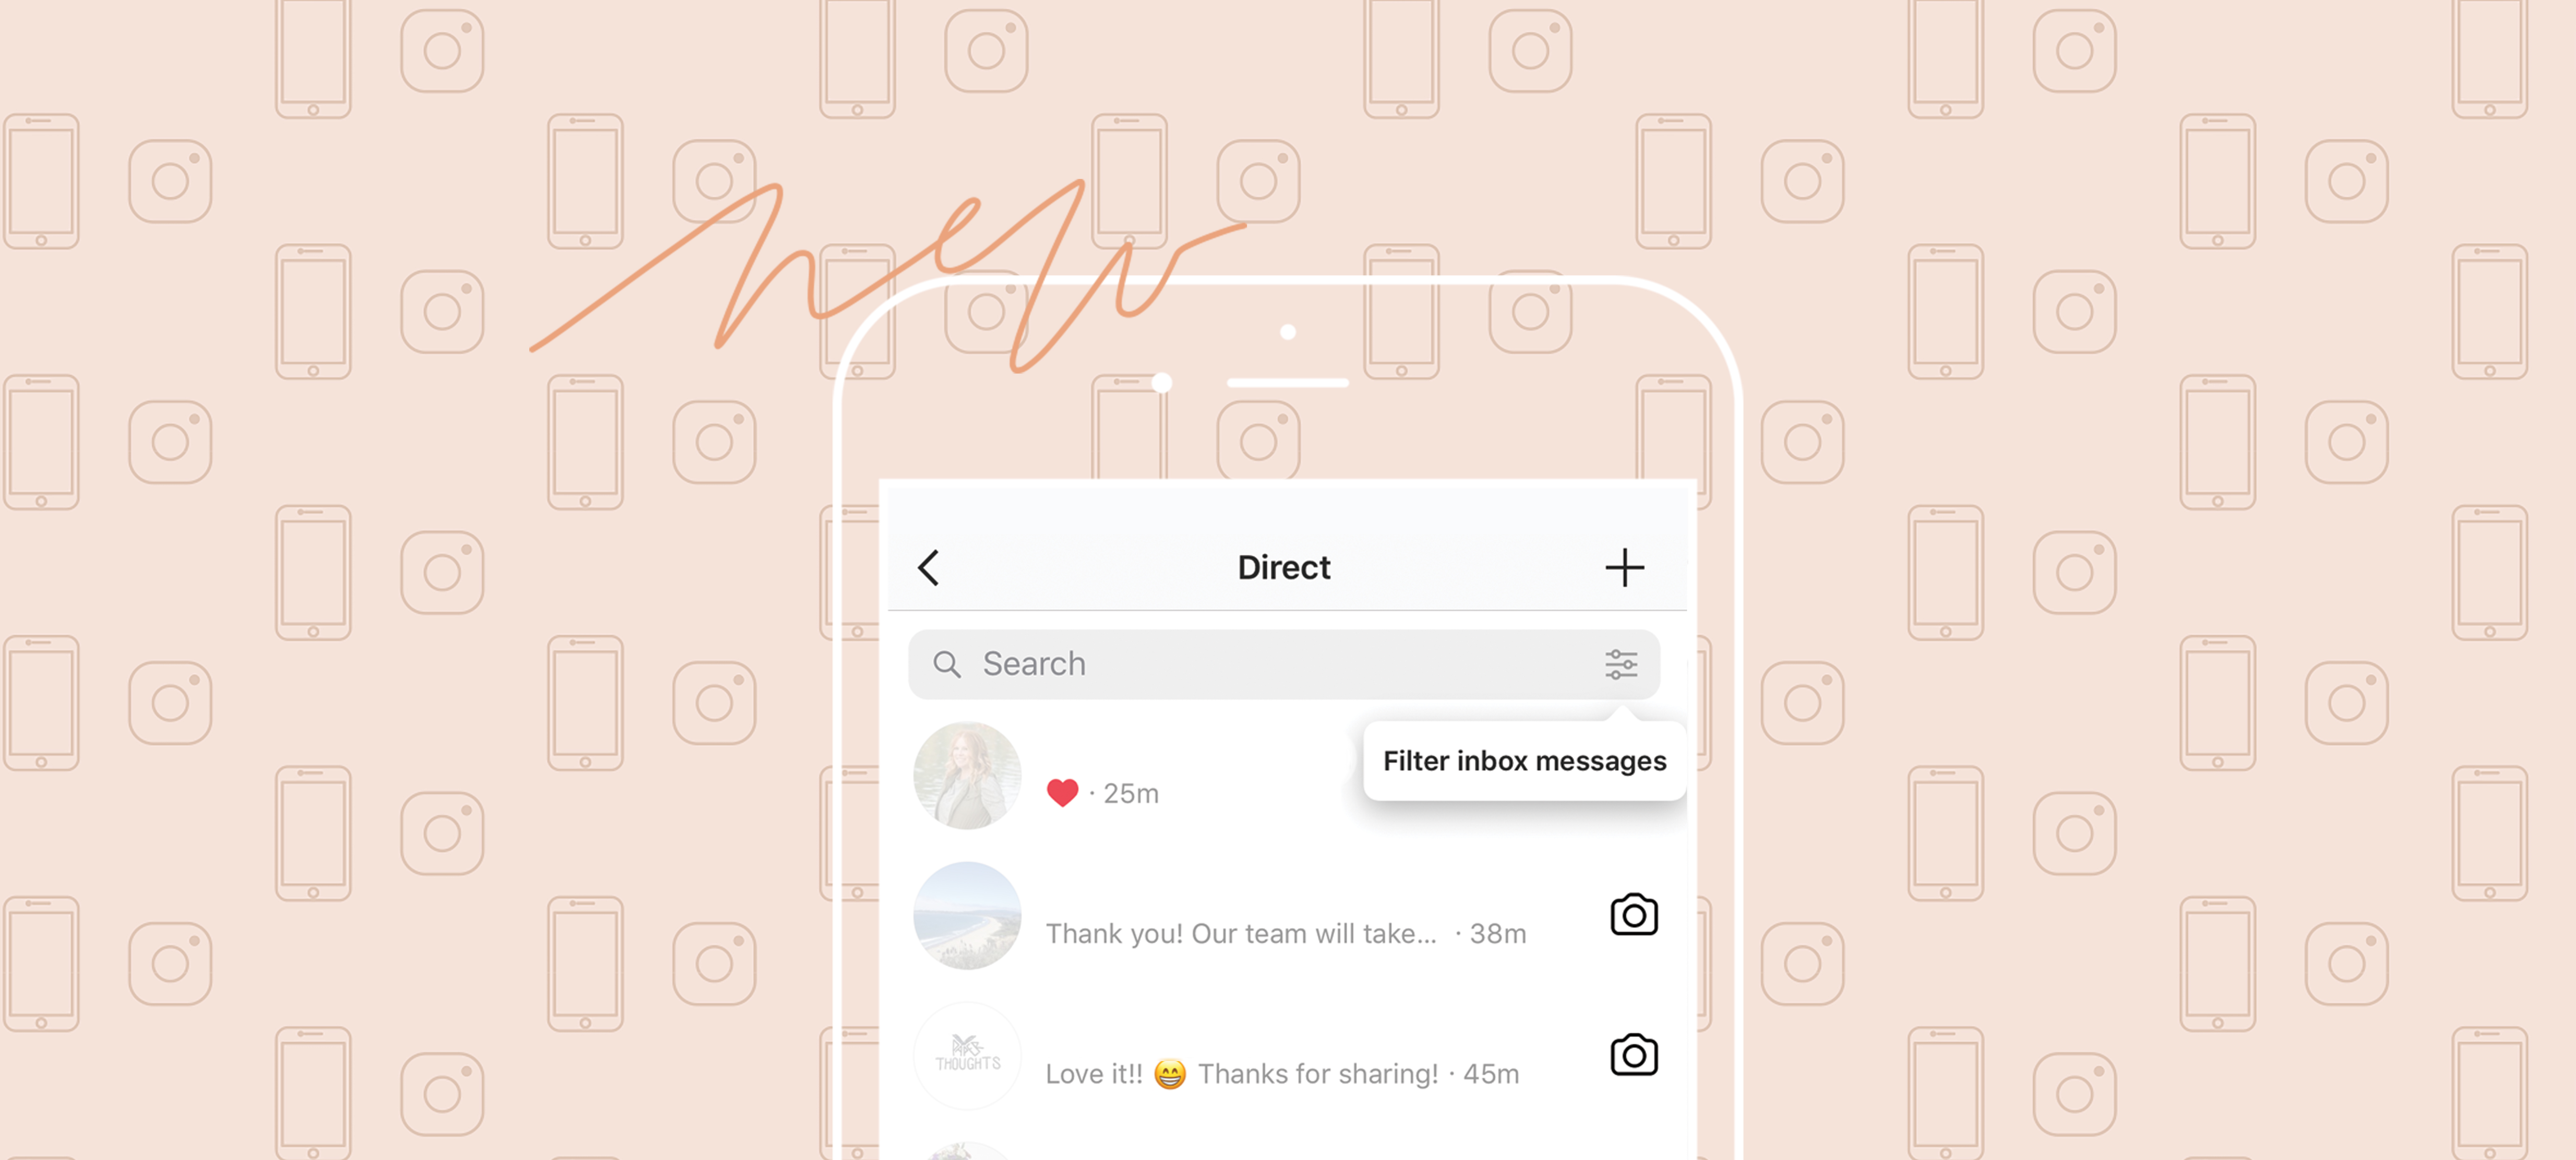 How to Filter and Star Direct Messages on Instagram